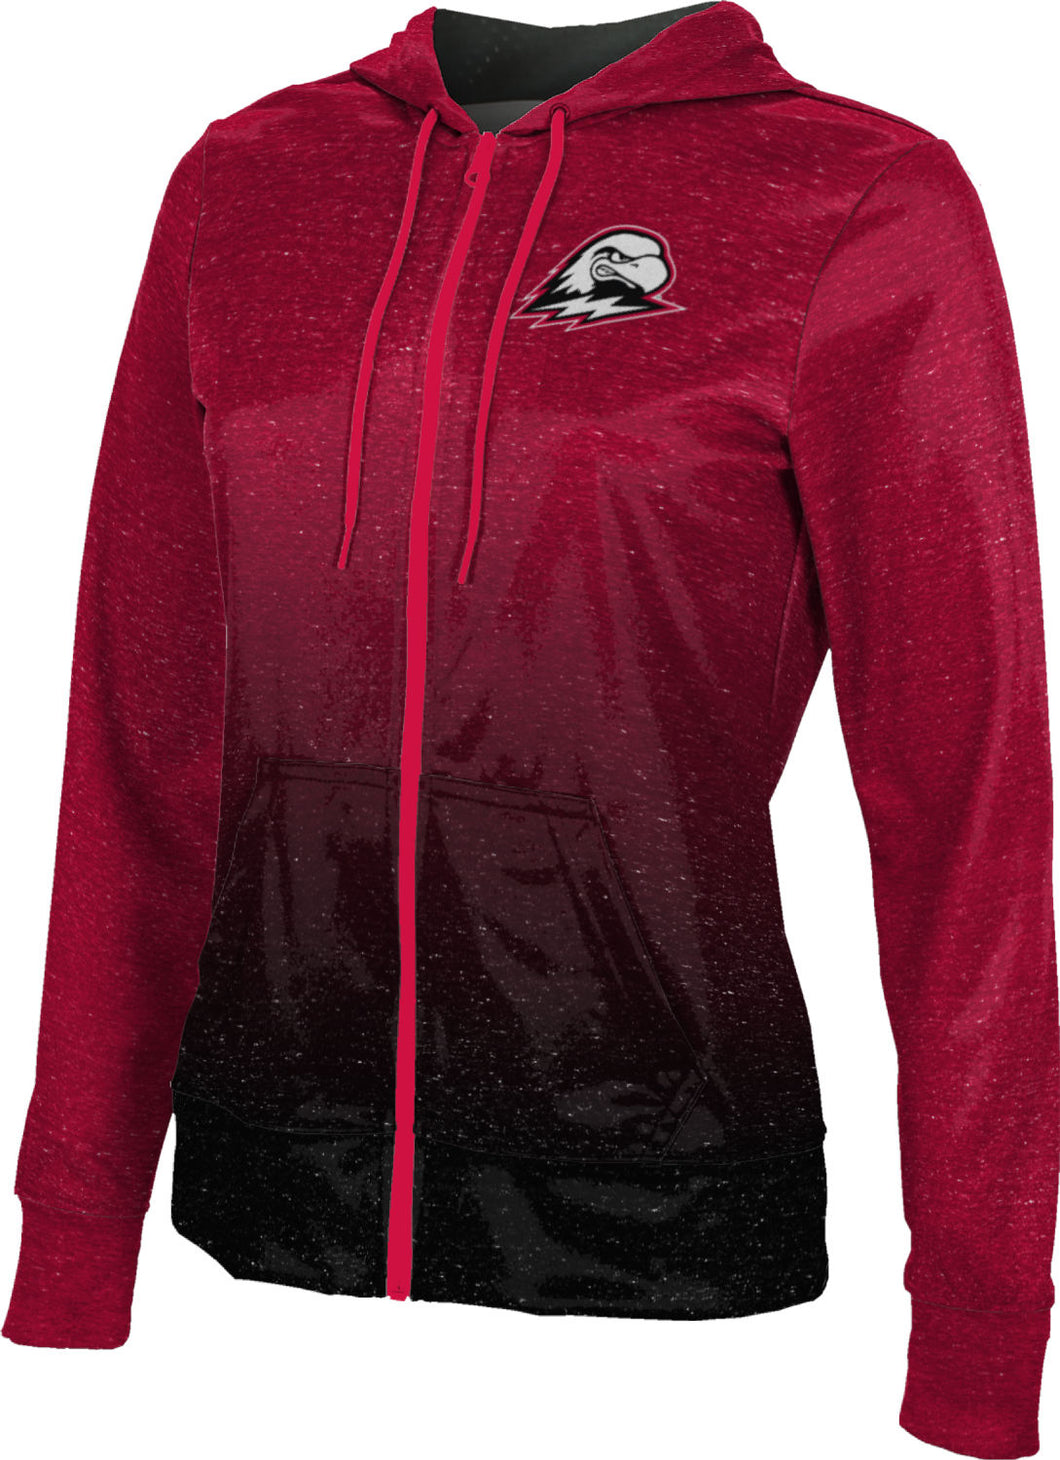 Southern Utah University: Women's Full Zip Hoodie - Ombre